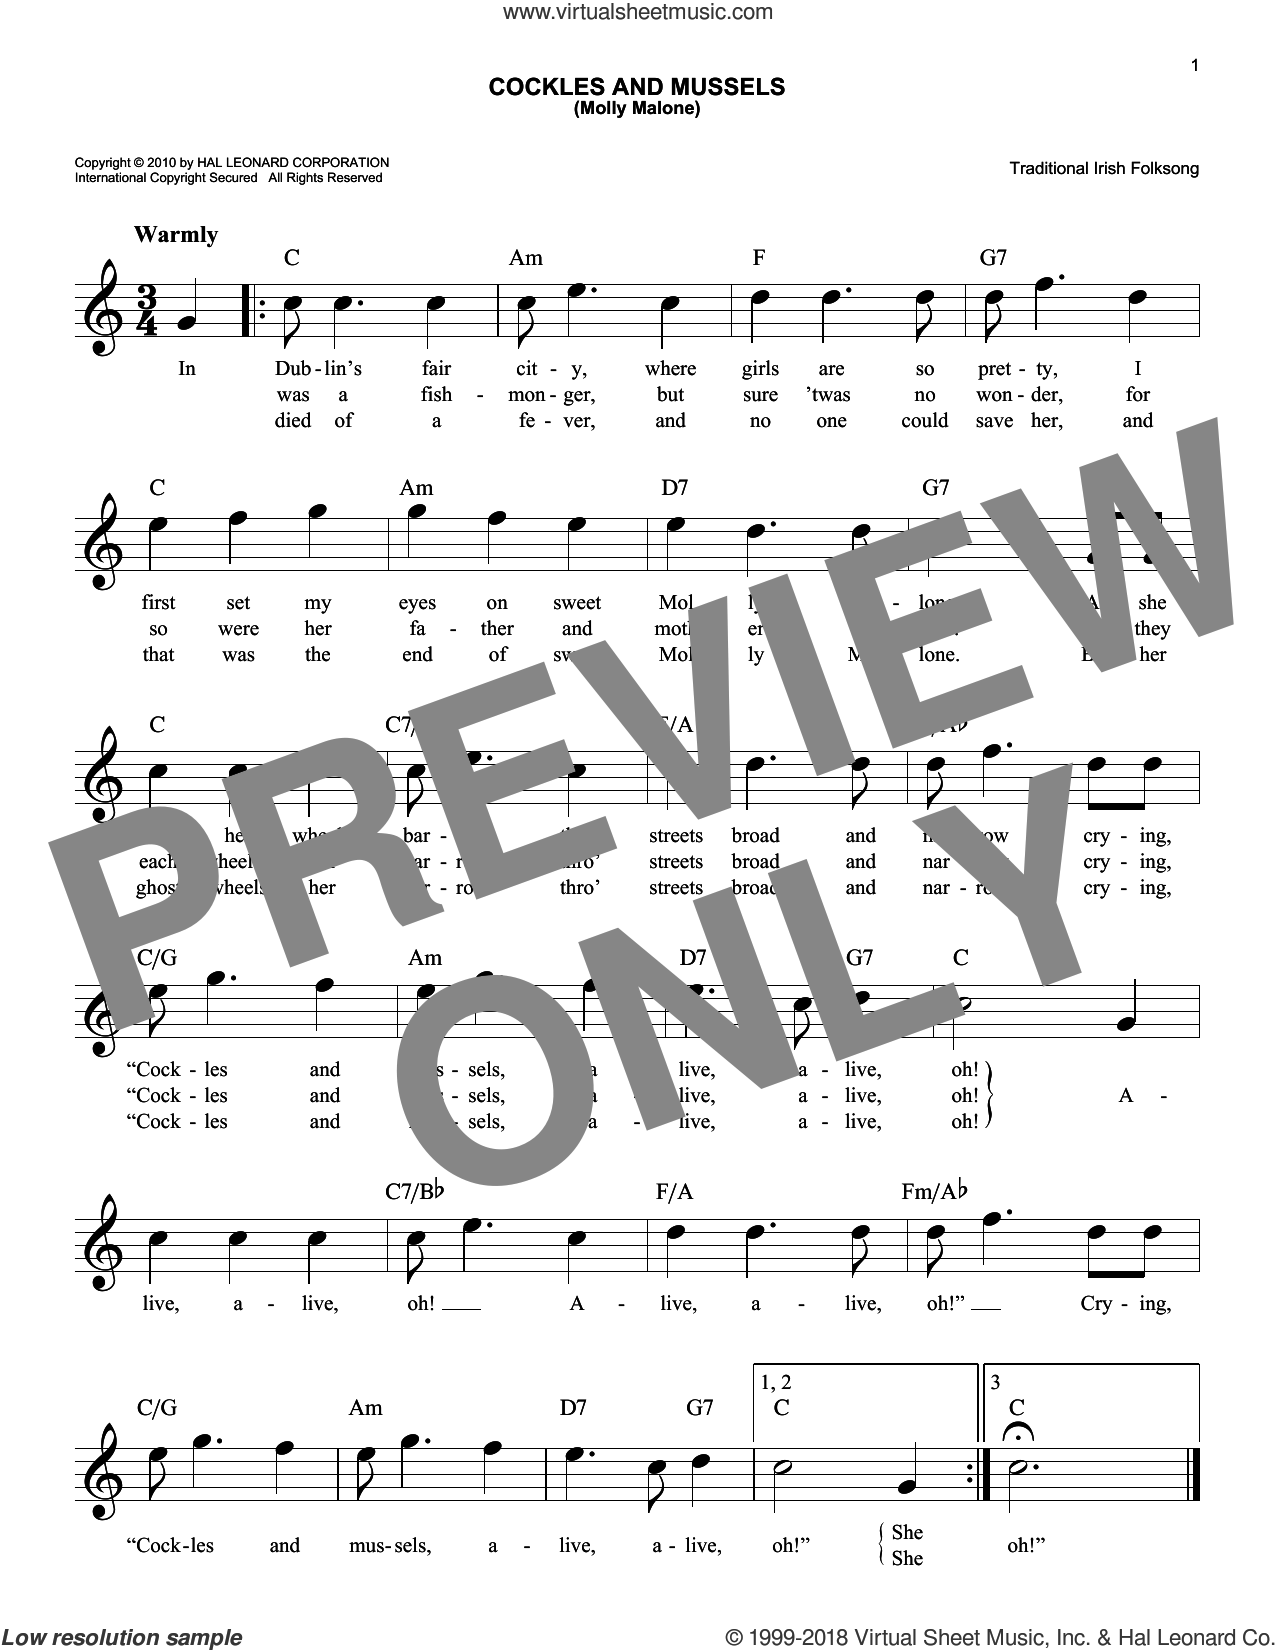 Cockles And Mussels (Molly Malone) sheet music for voice and other instruments (fake book) by Traditional Irish Folksong, intermediate skill level